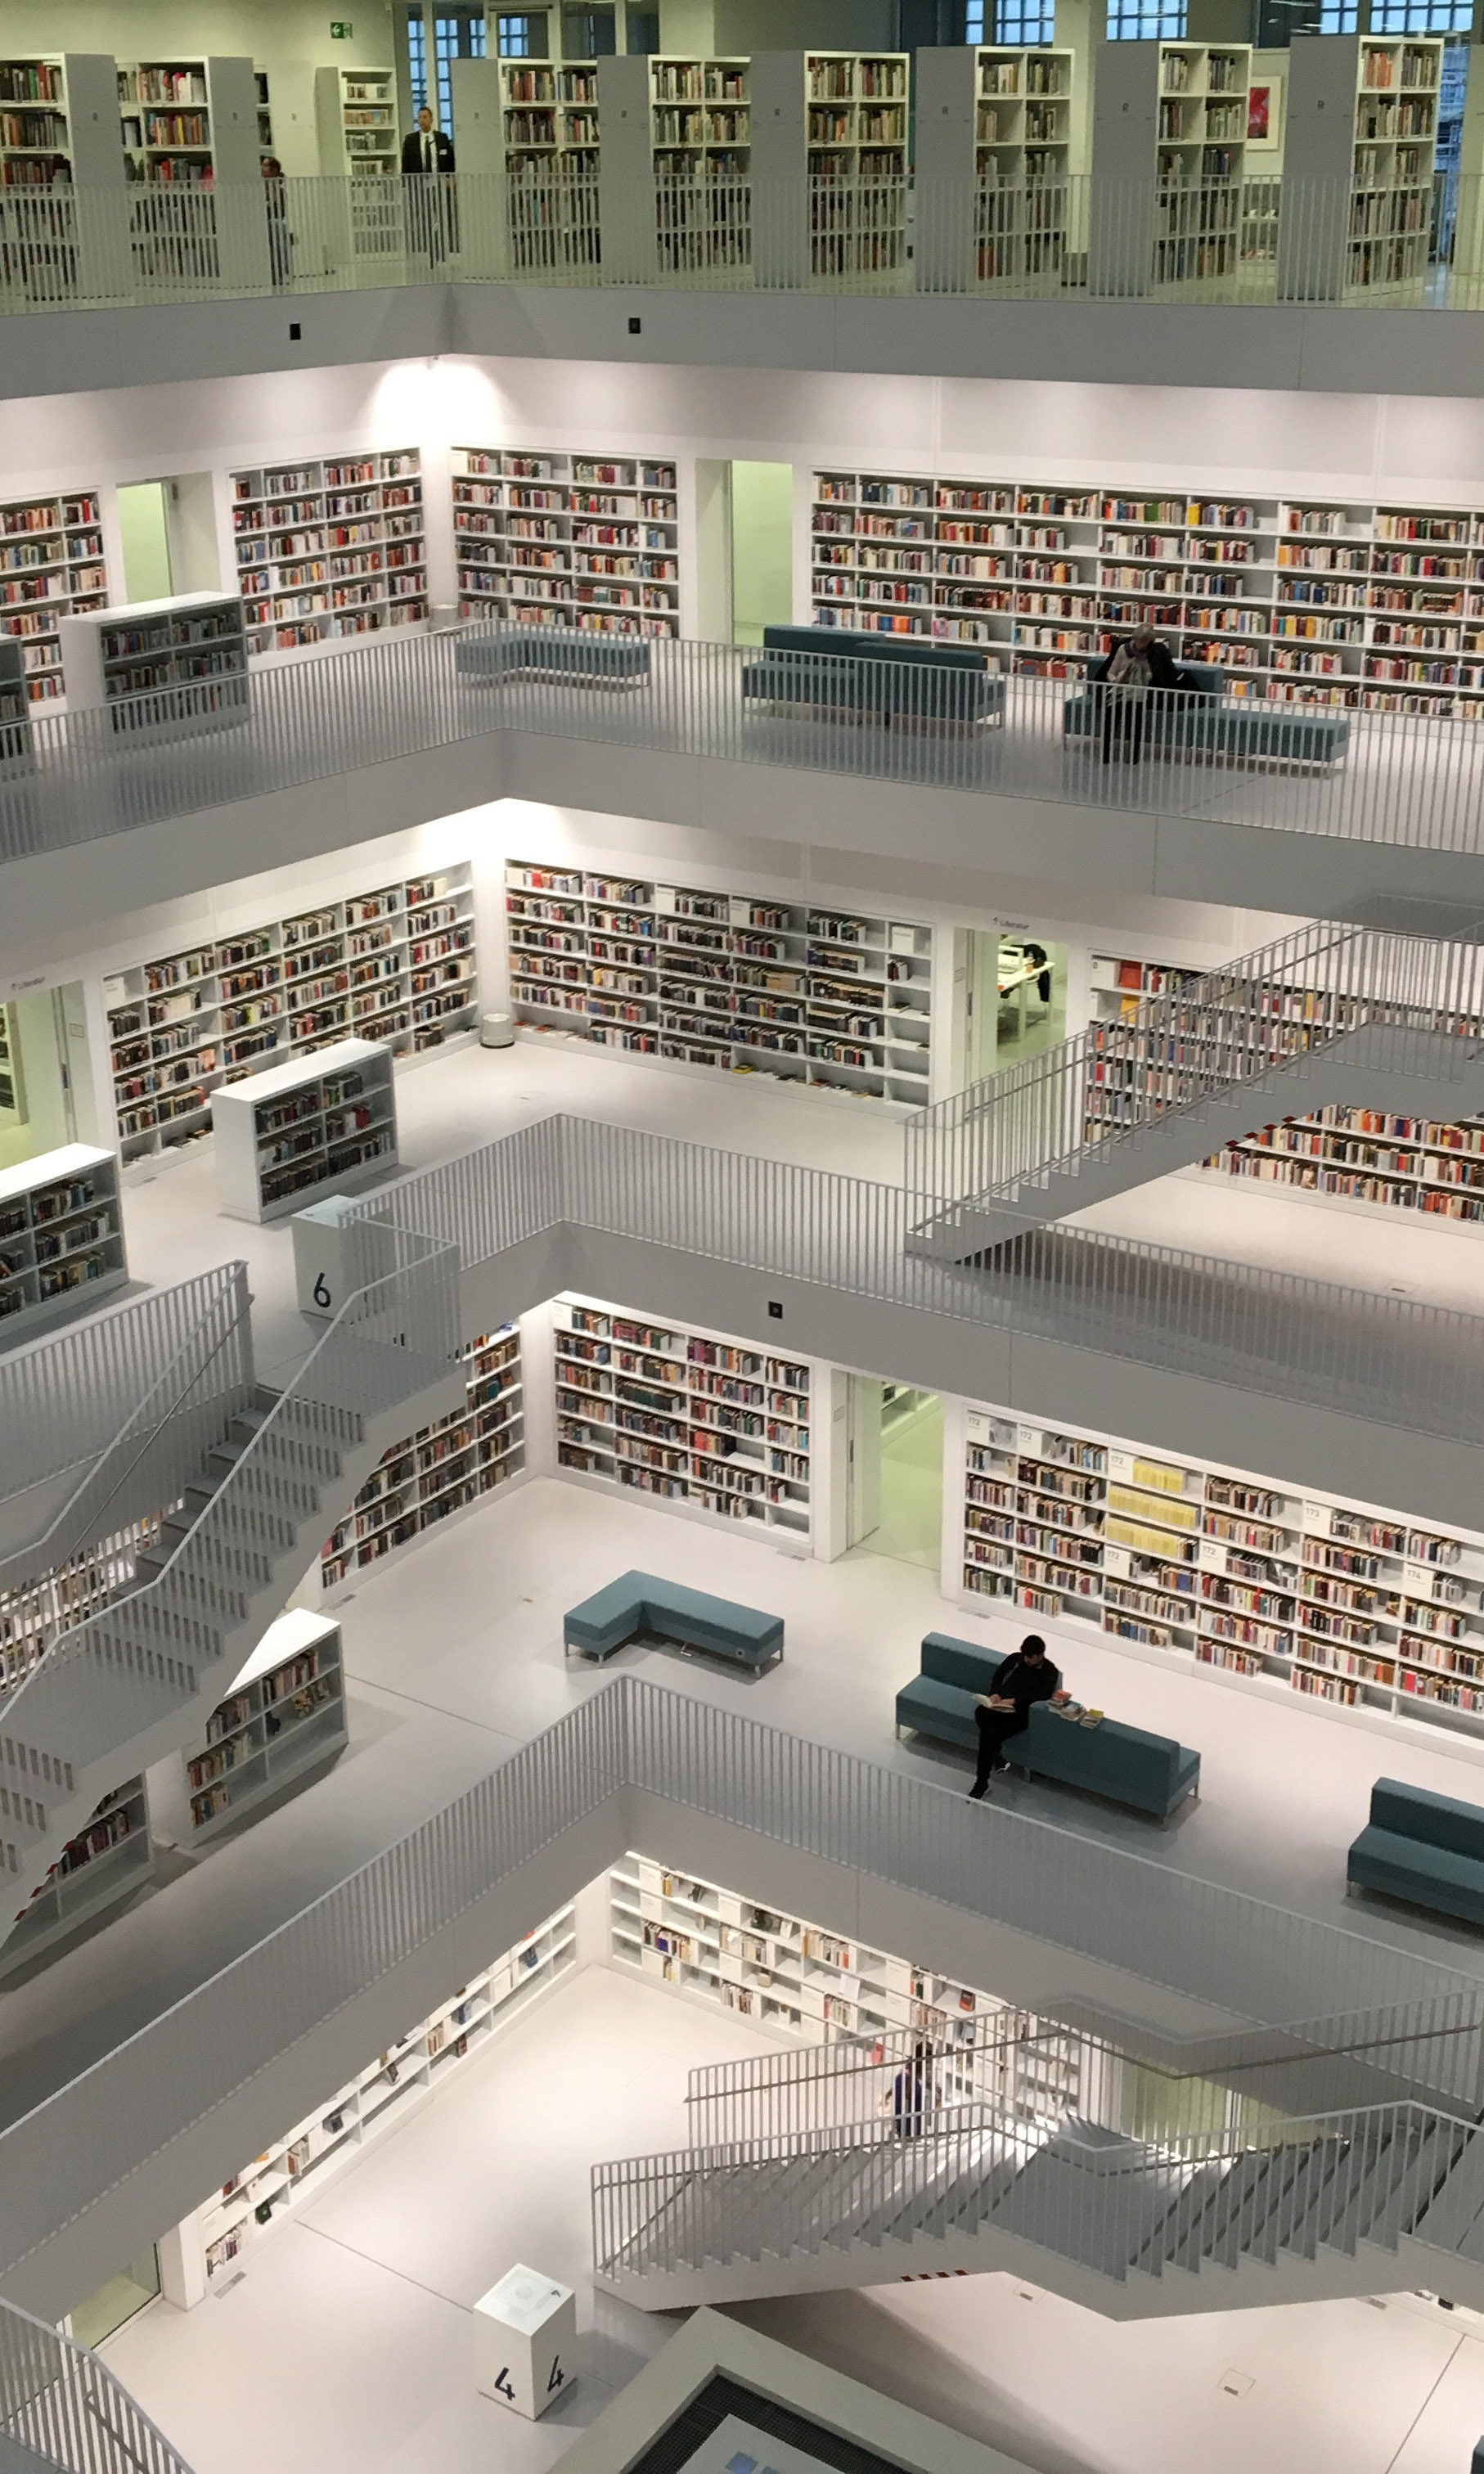 Preserving Access While Regulating Conduct in Public Libraries